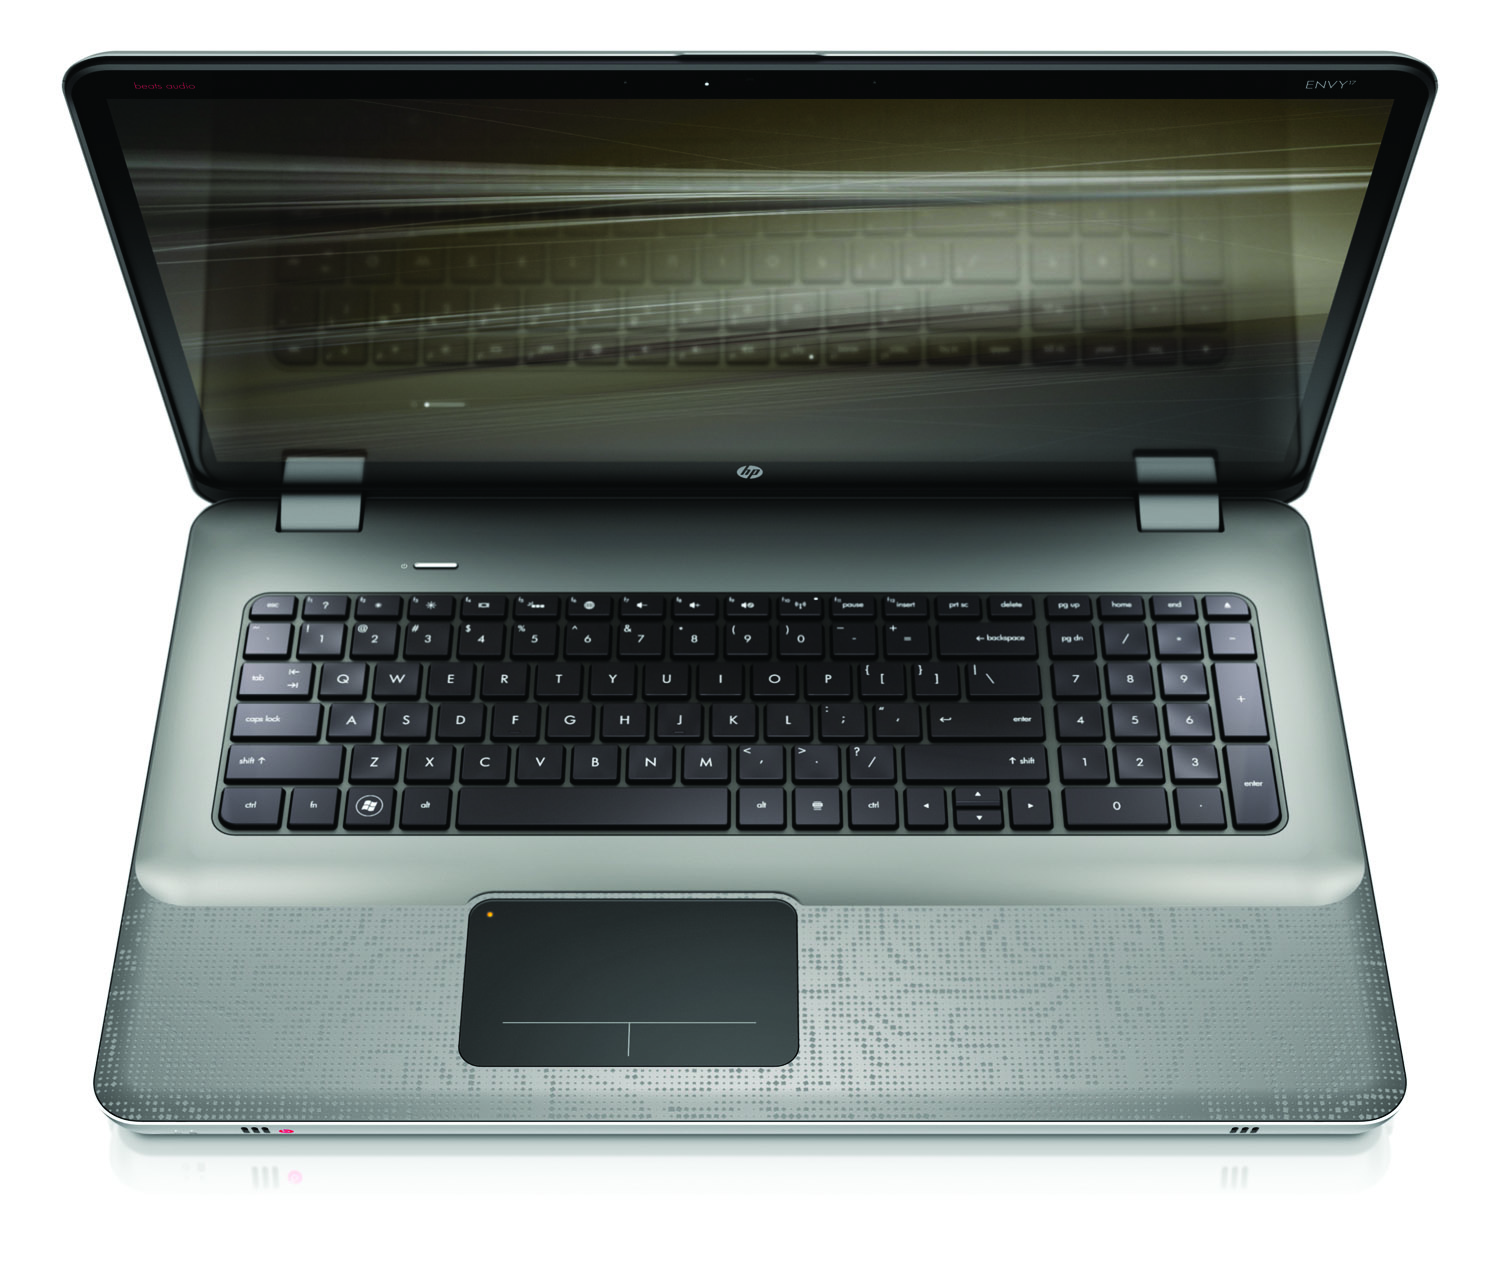 HP Envy 17, top open on white